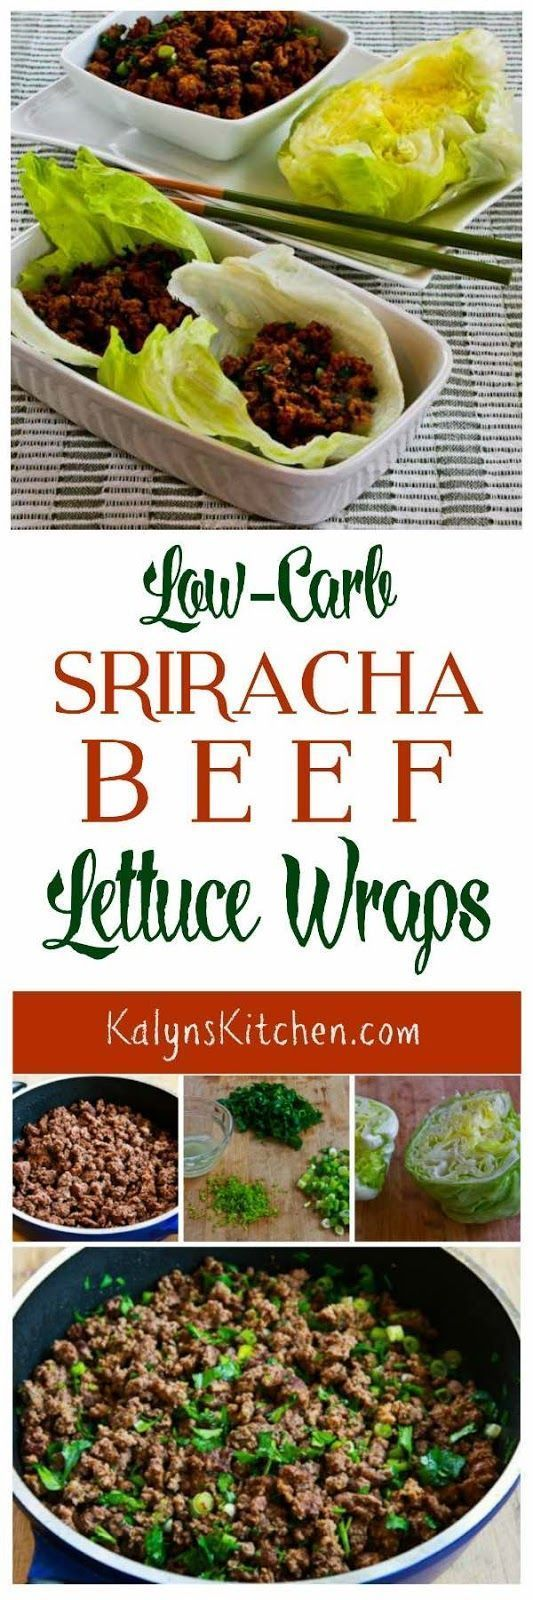 I love, love, love lettuce wraps, and these Low-Carb Sriracha Beef Lettuce Wraps are one of my favorites. This low-carb recipe is also gluten-free, dairy-free, and South Beach Diet Phase One. [found on http://KalynsKitchen.com]